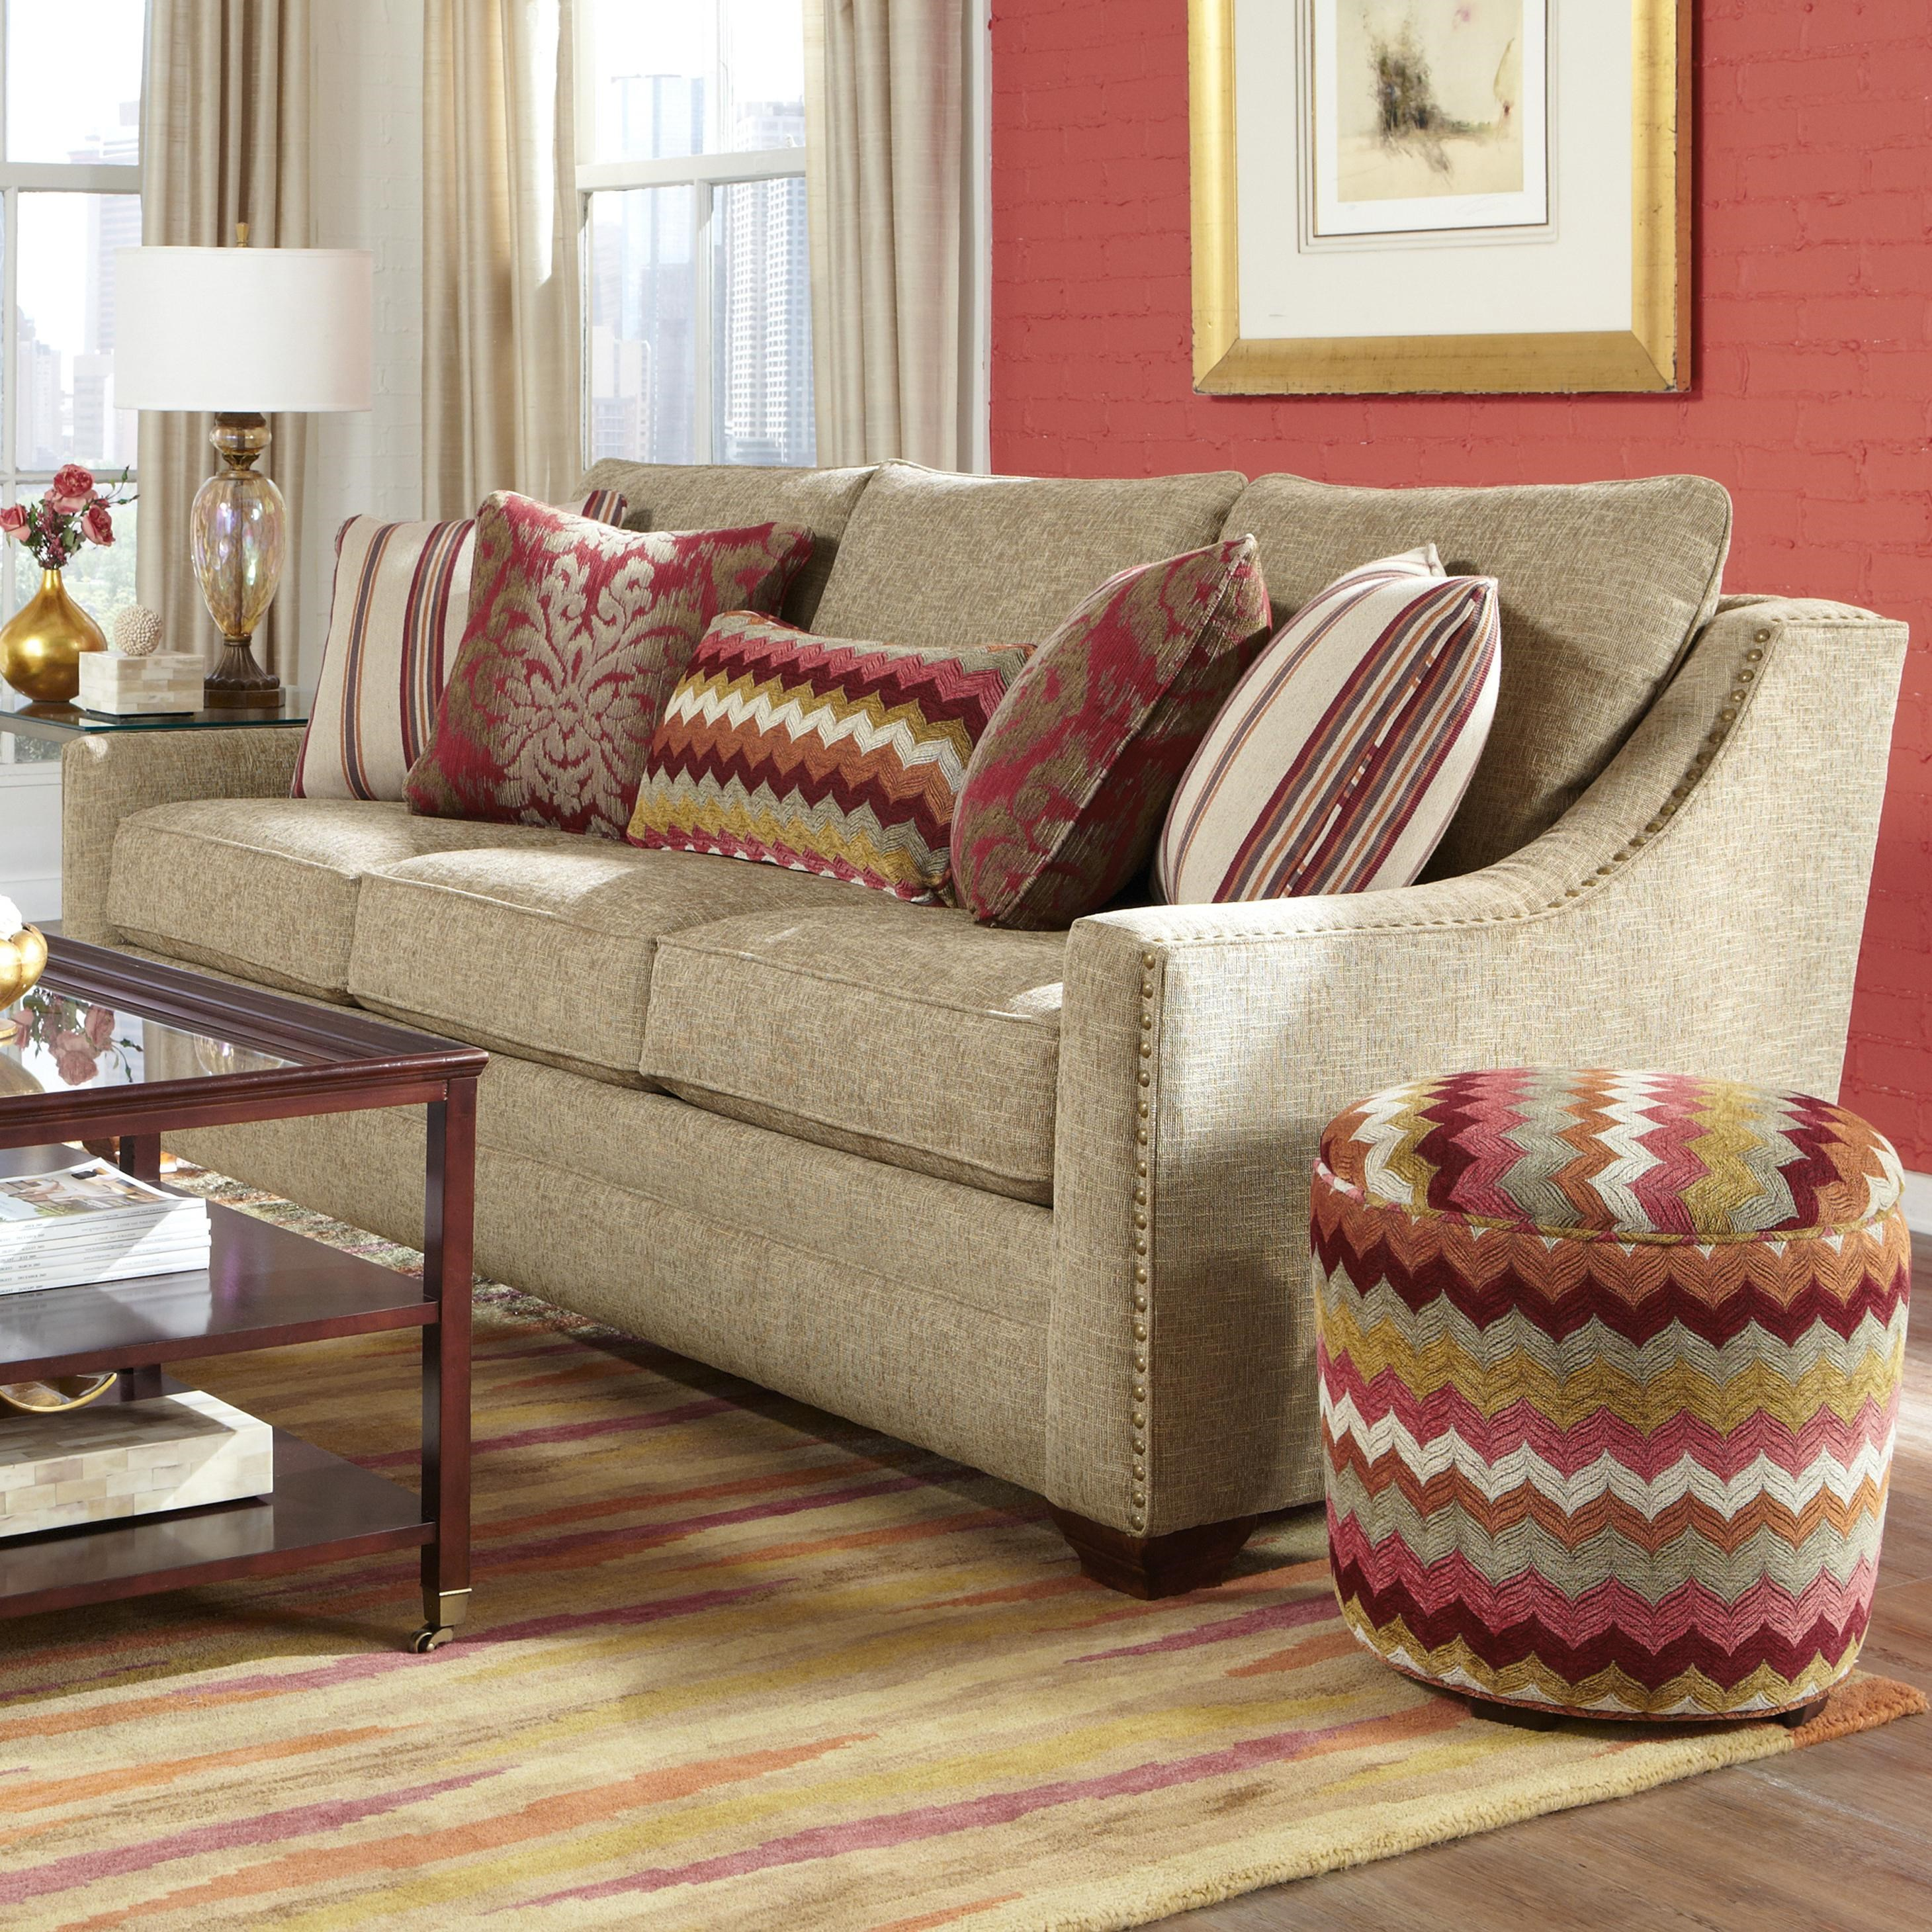 Craftmaster 7336 Transitional Sofa with Oversized Nailheads